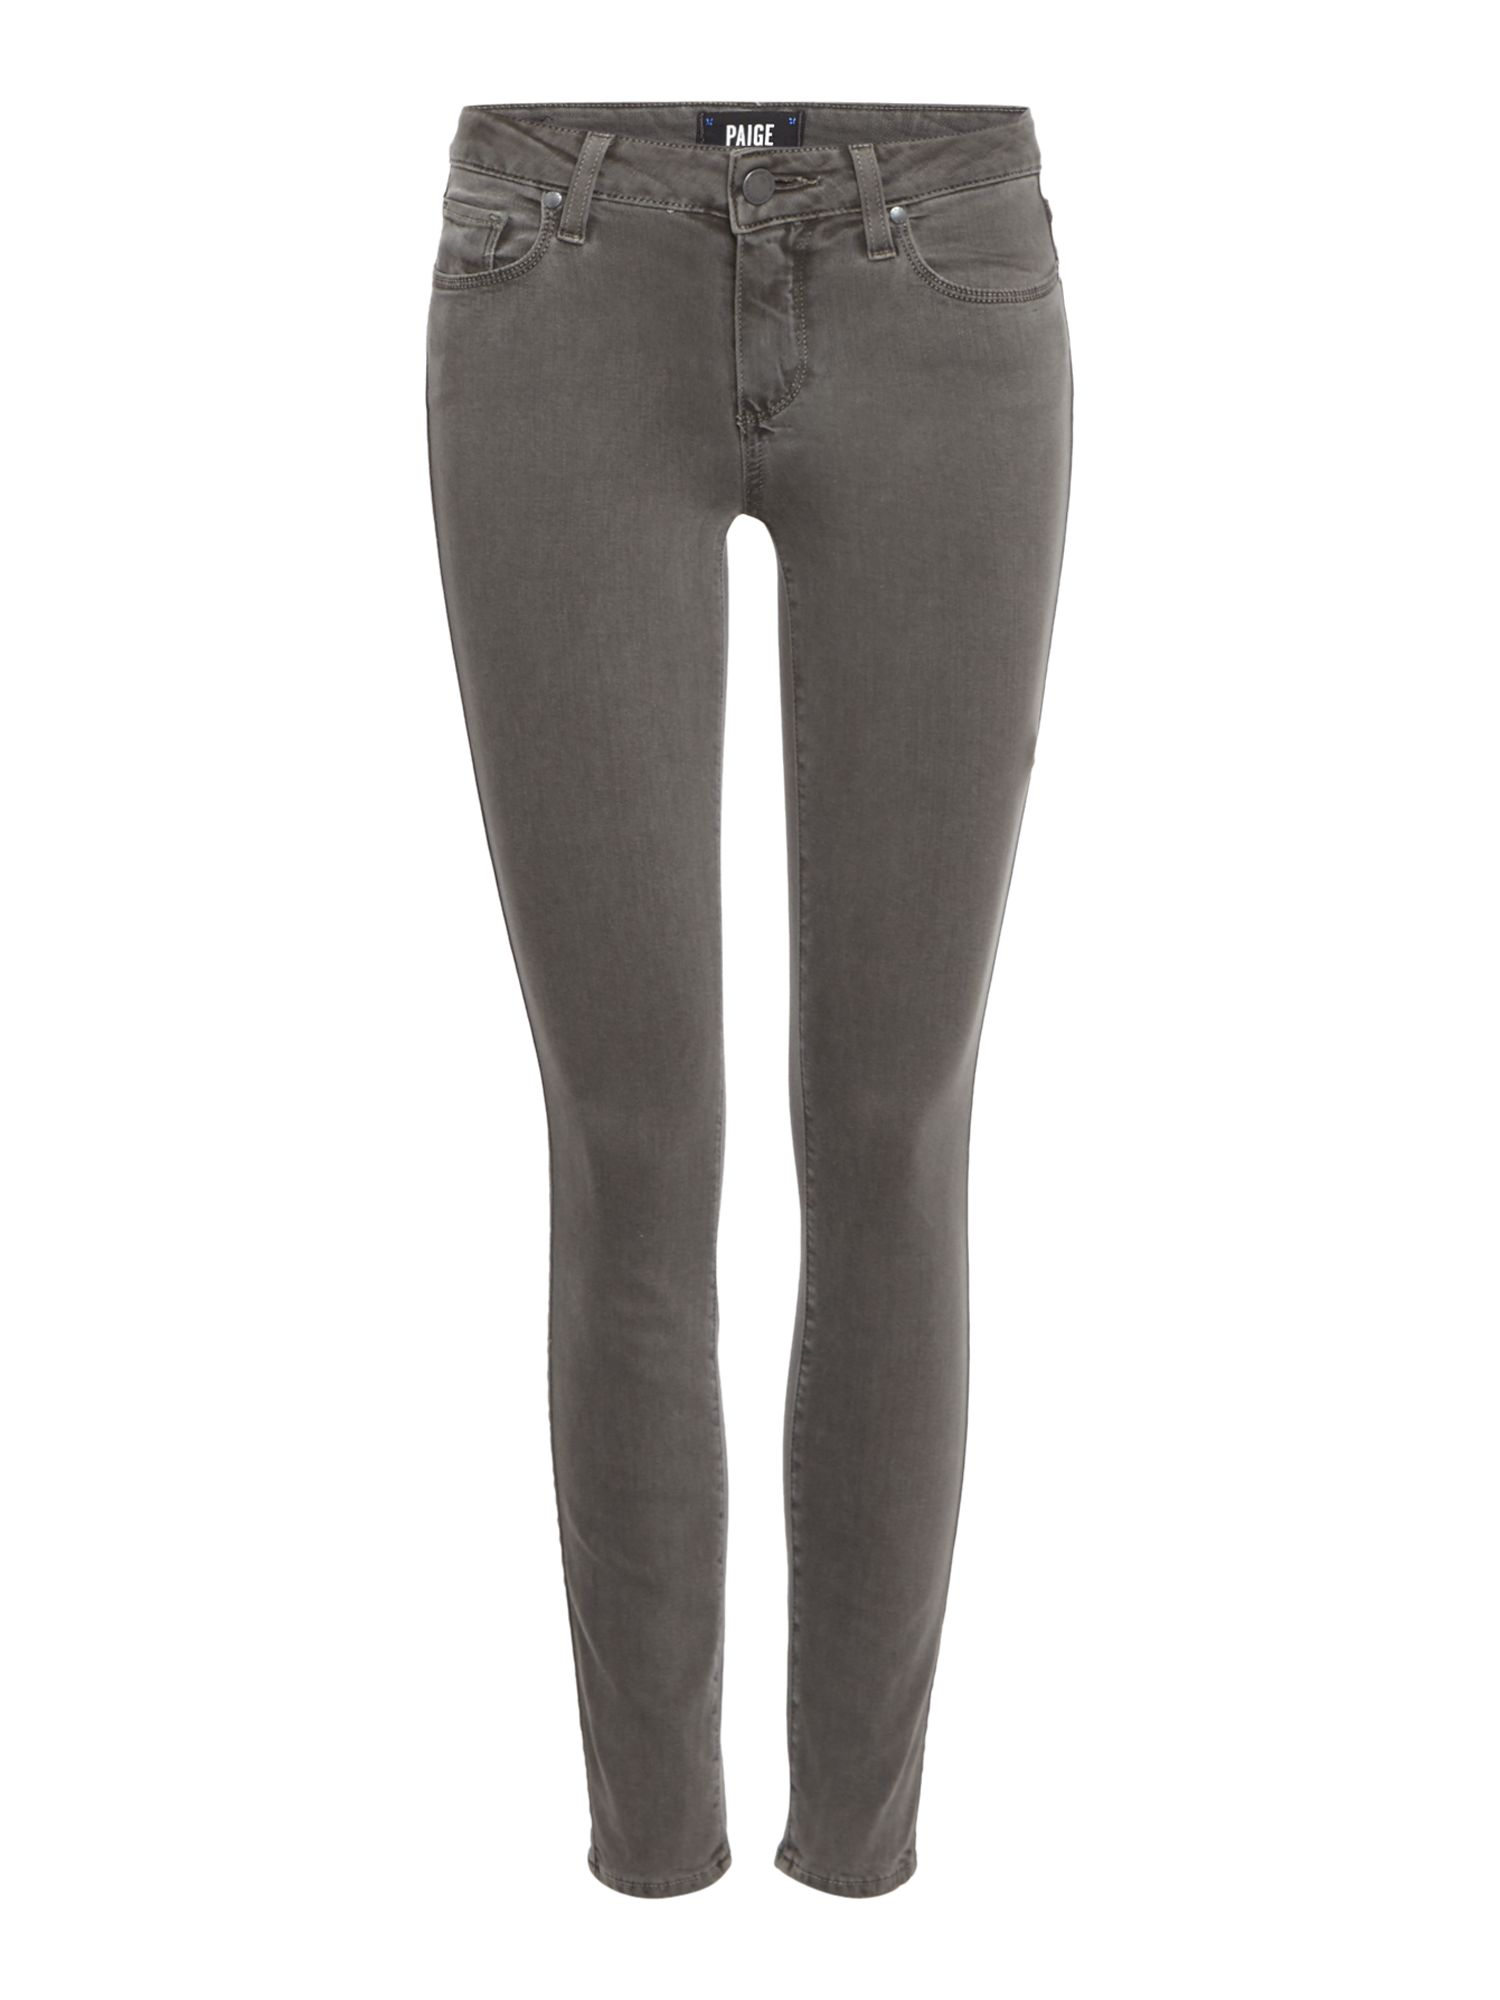 Verdugo Ankle Jeans In Coal Grey, Grey